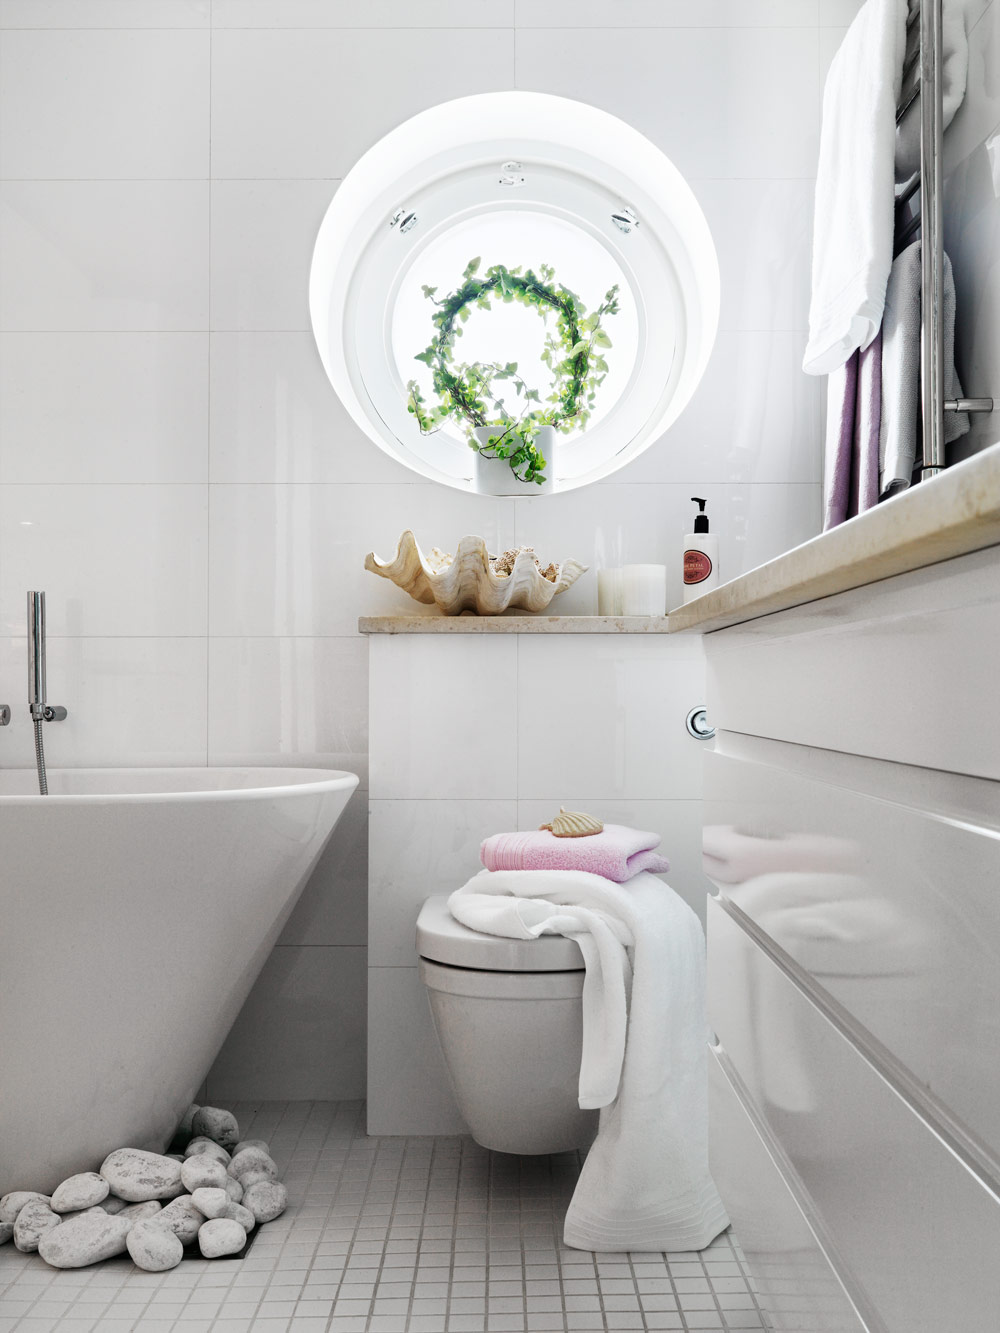 Stylish small bathroom with an unusual decor digsdigs for Photos of small bathrooms